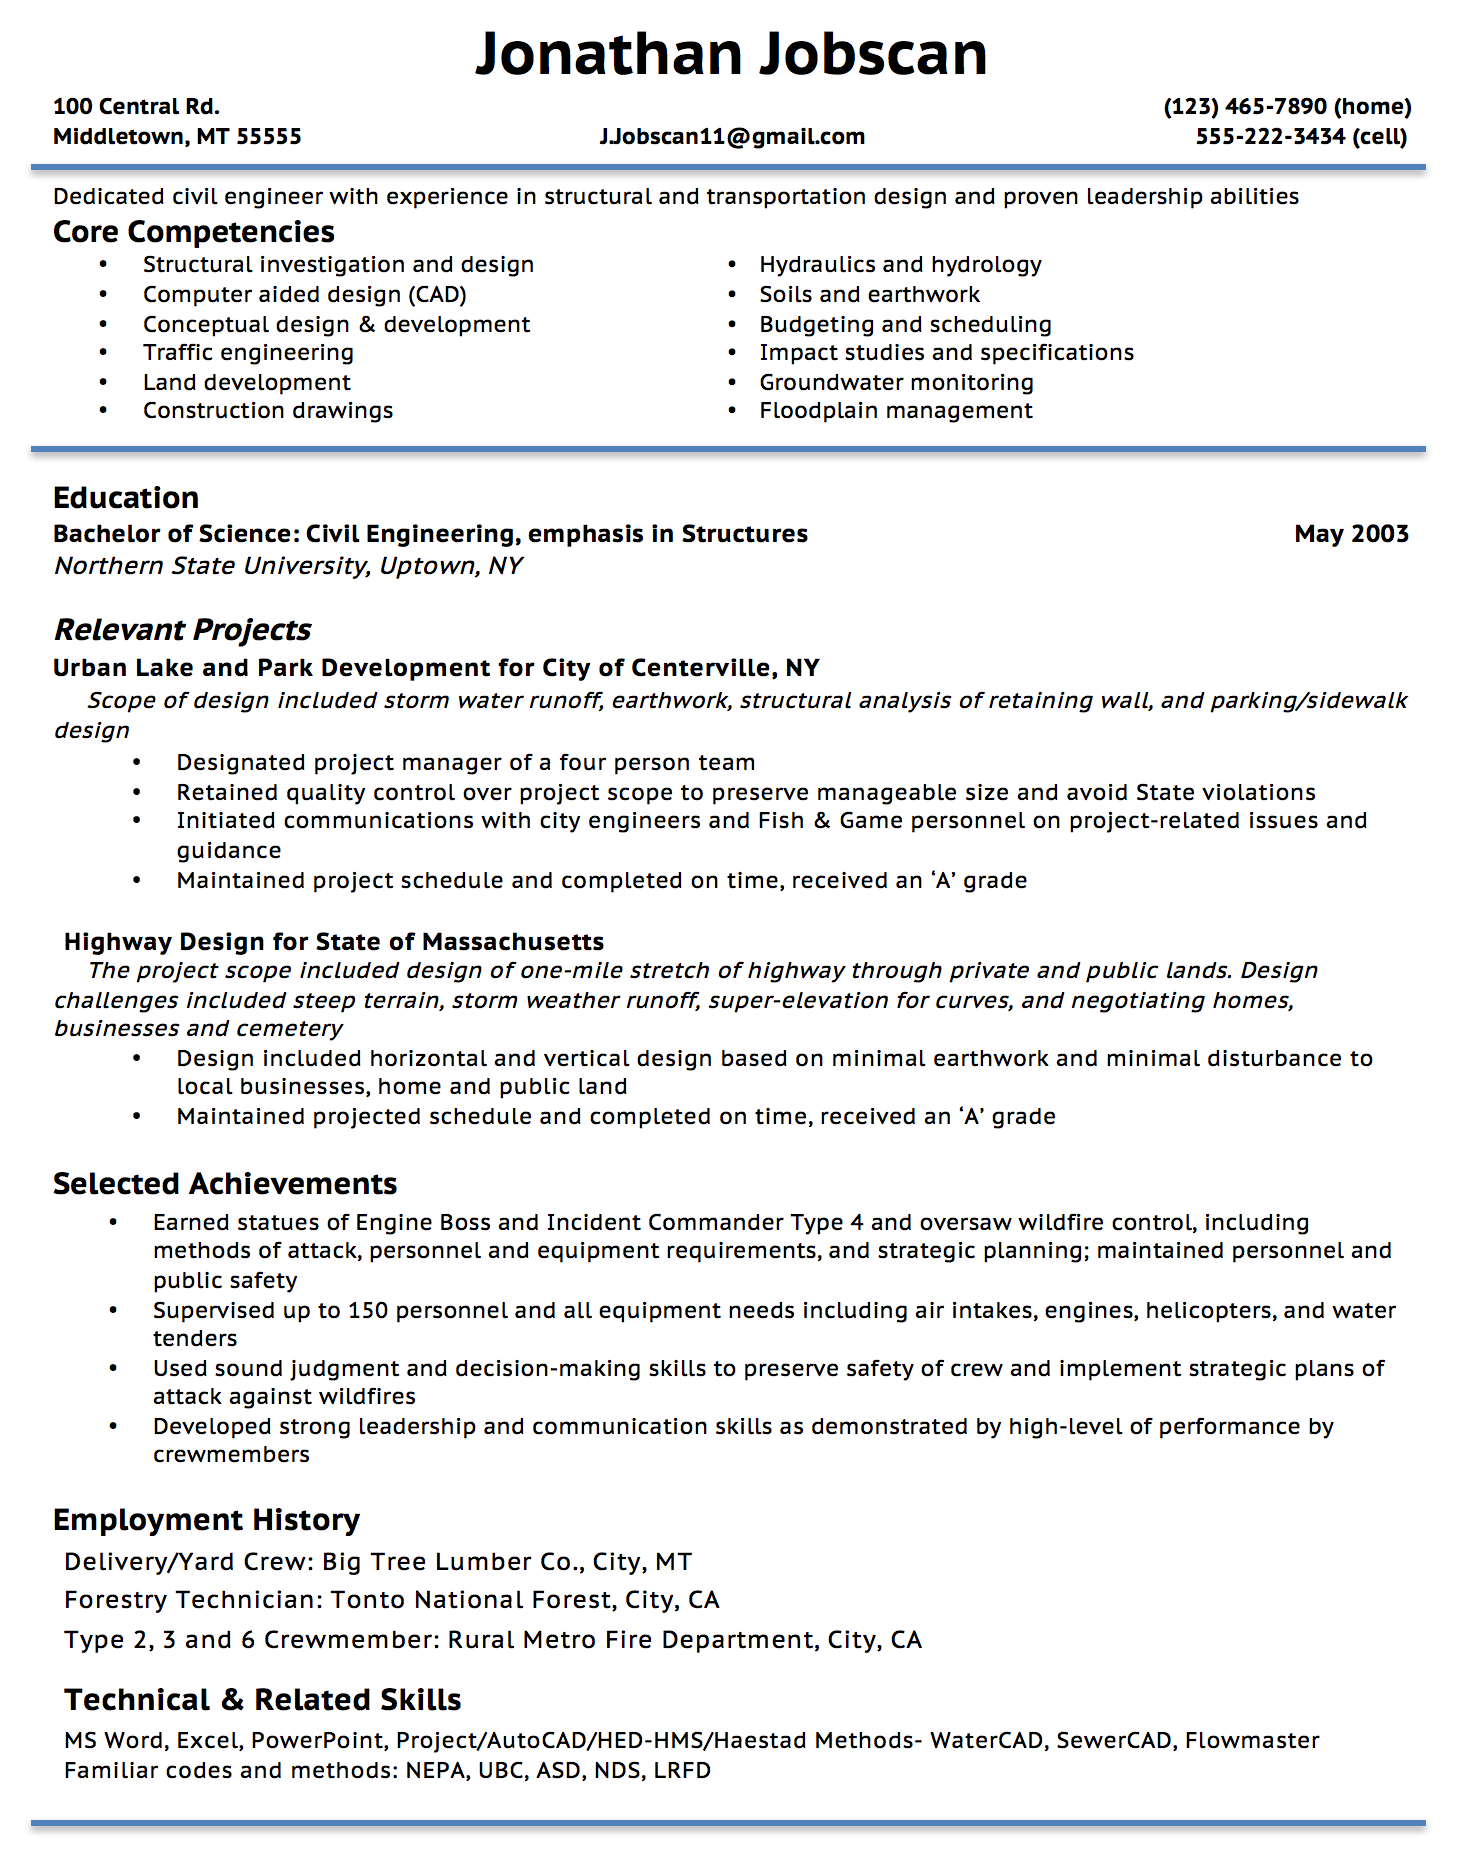 Opposenewapstandardsus  Surprising Resume Writing Guide  Jobscan With Entrancing Example Of A Functional Resume Format With Cute How Do You Spell Resume Also Nursing Resume Template In Addition What Is A Cv Resume And Sales Resume Examples As Well As Restaurant Manager Resume Additionally Types Of Resumes From Jobscanco With Opposenewapstandardsus  Entrancing Resume Writing Guide  Jobscan With Cute Example Of A Functional Resume Format And Surprising How Do You Spell Resume Also Nursing Resume Template In Addition What Is A Cv Resume From Jobscanco